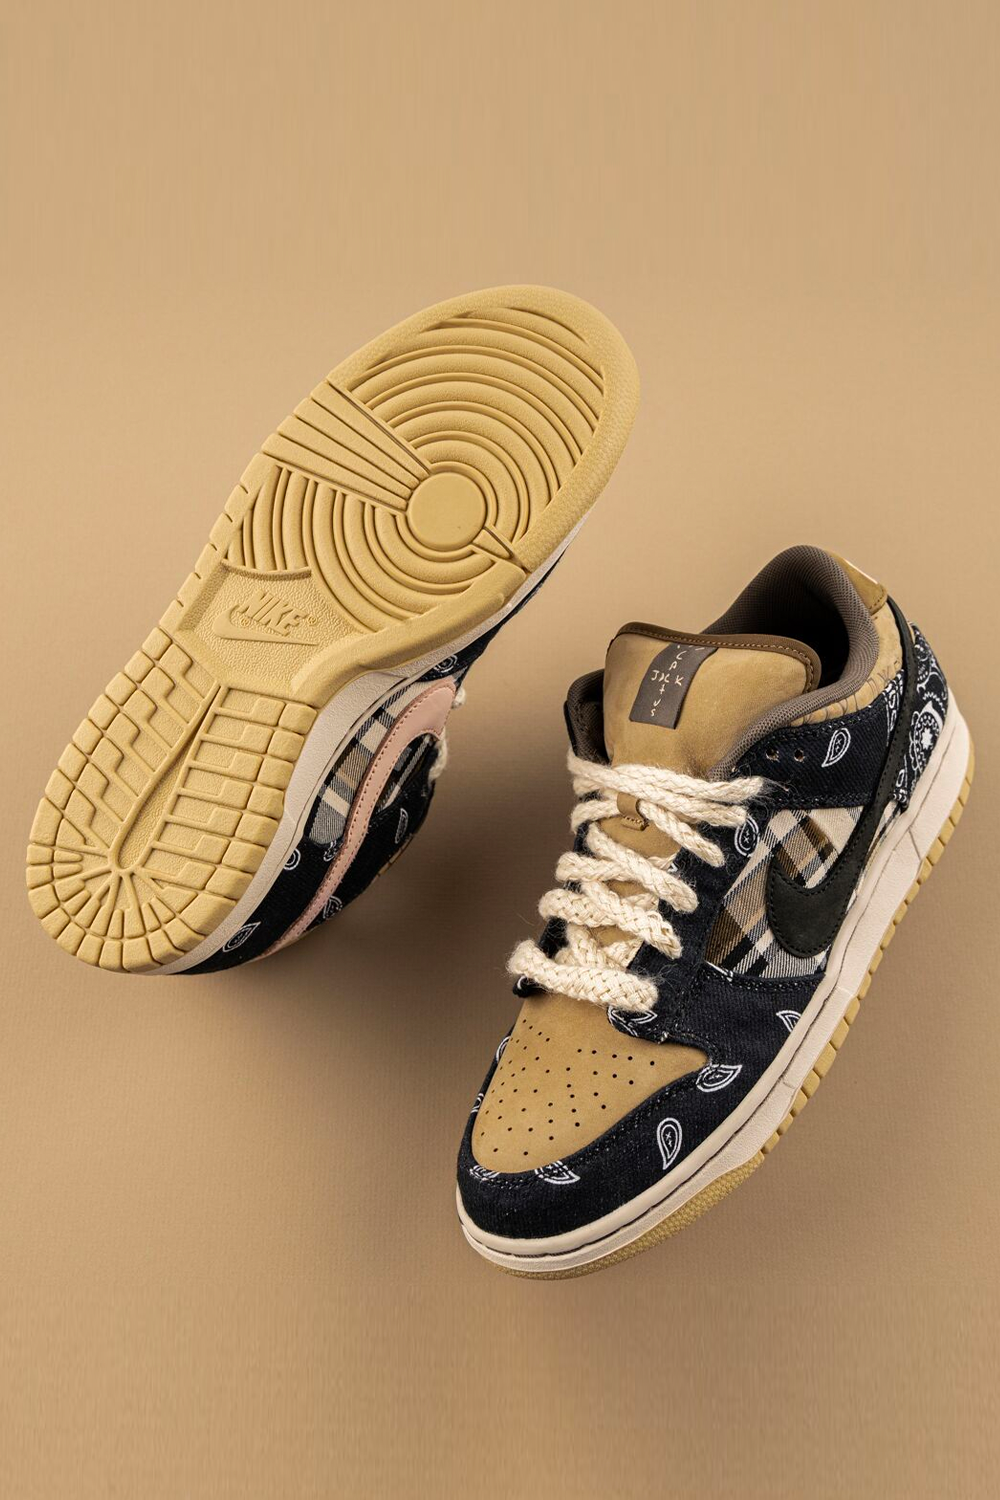 Nike Sb Dunk Low Travis Scott Ct5053 001 2020 In 2020 Hype Shoes Casual Shoes Women Travis Scott Shoes